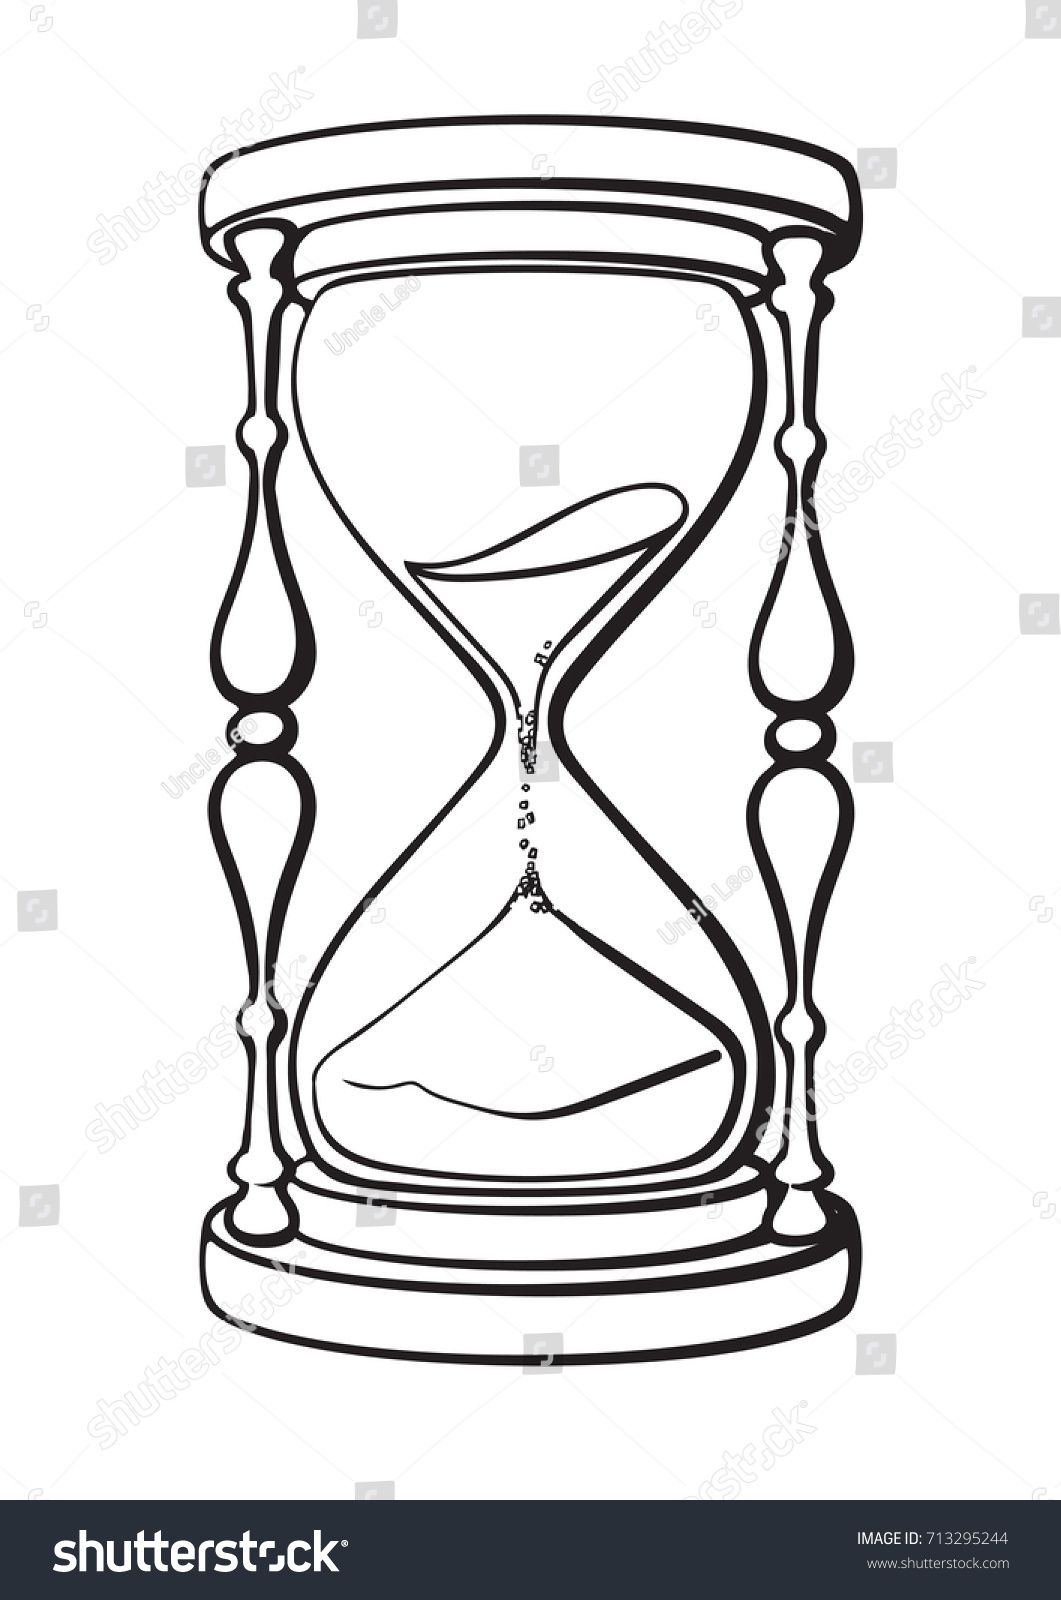 15++ Hourglass clipart black and white ideas